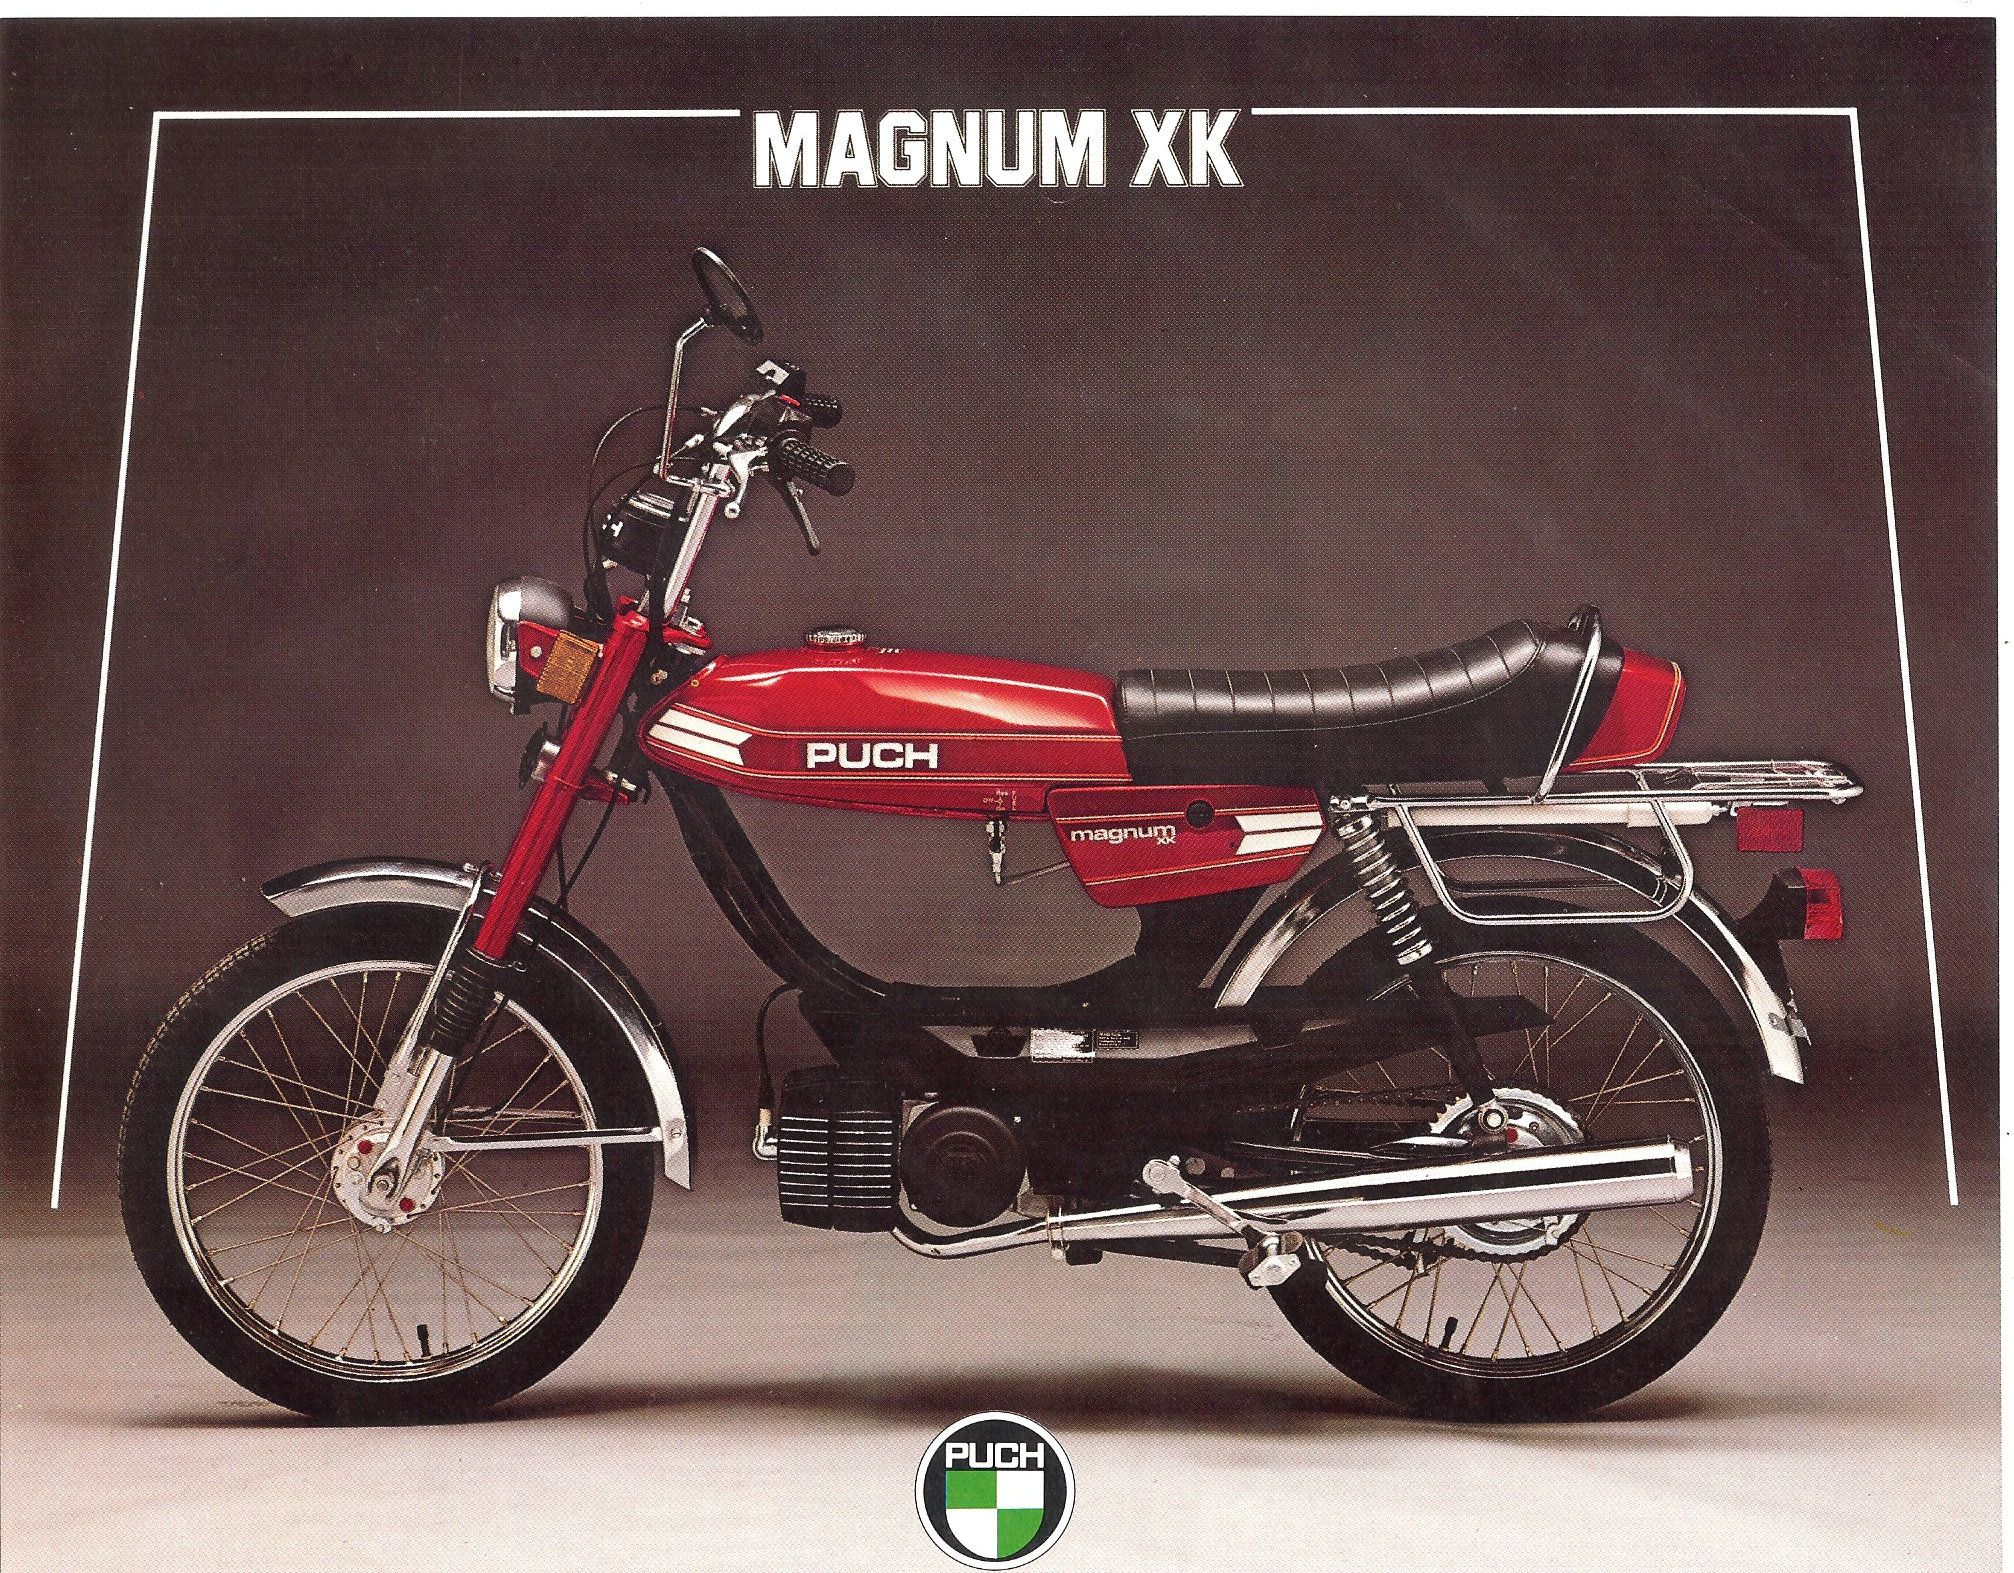 puch magnum xk Mini Bike, Small Motorcycles, Mopeds, Brochures